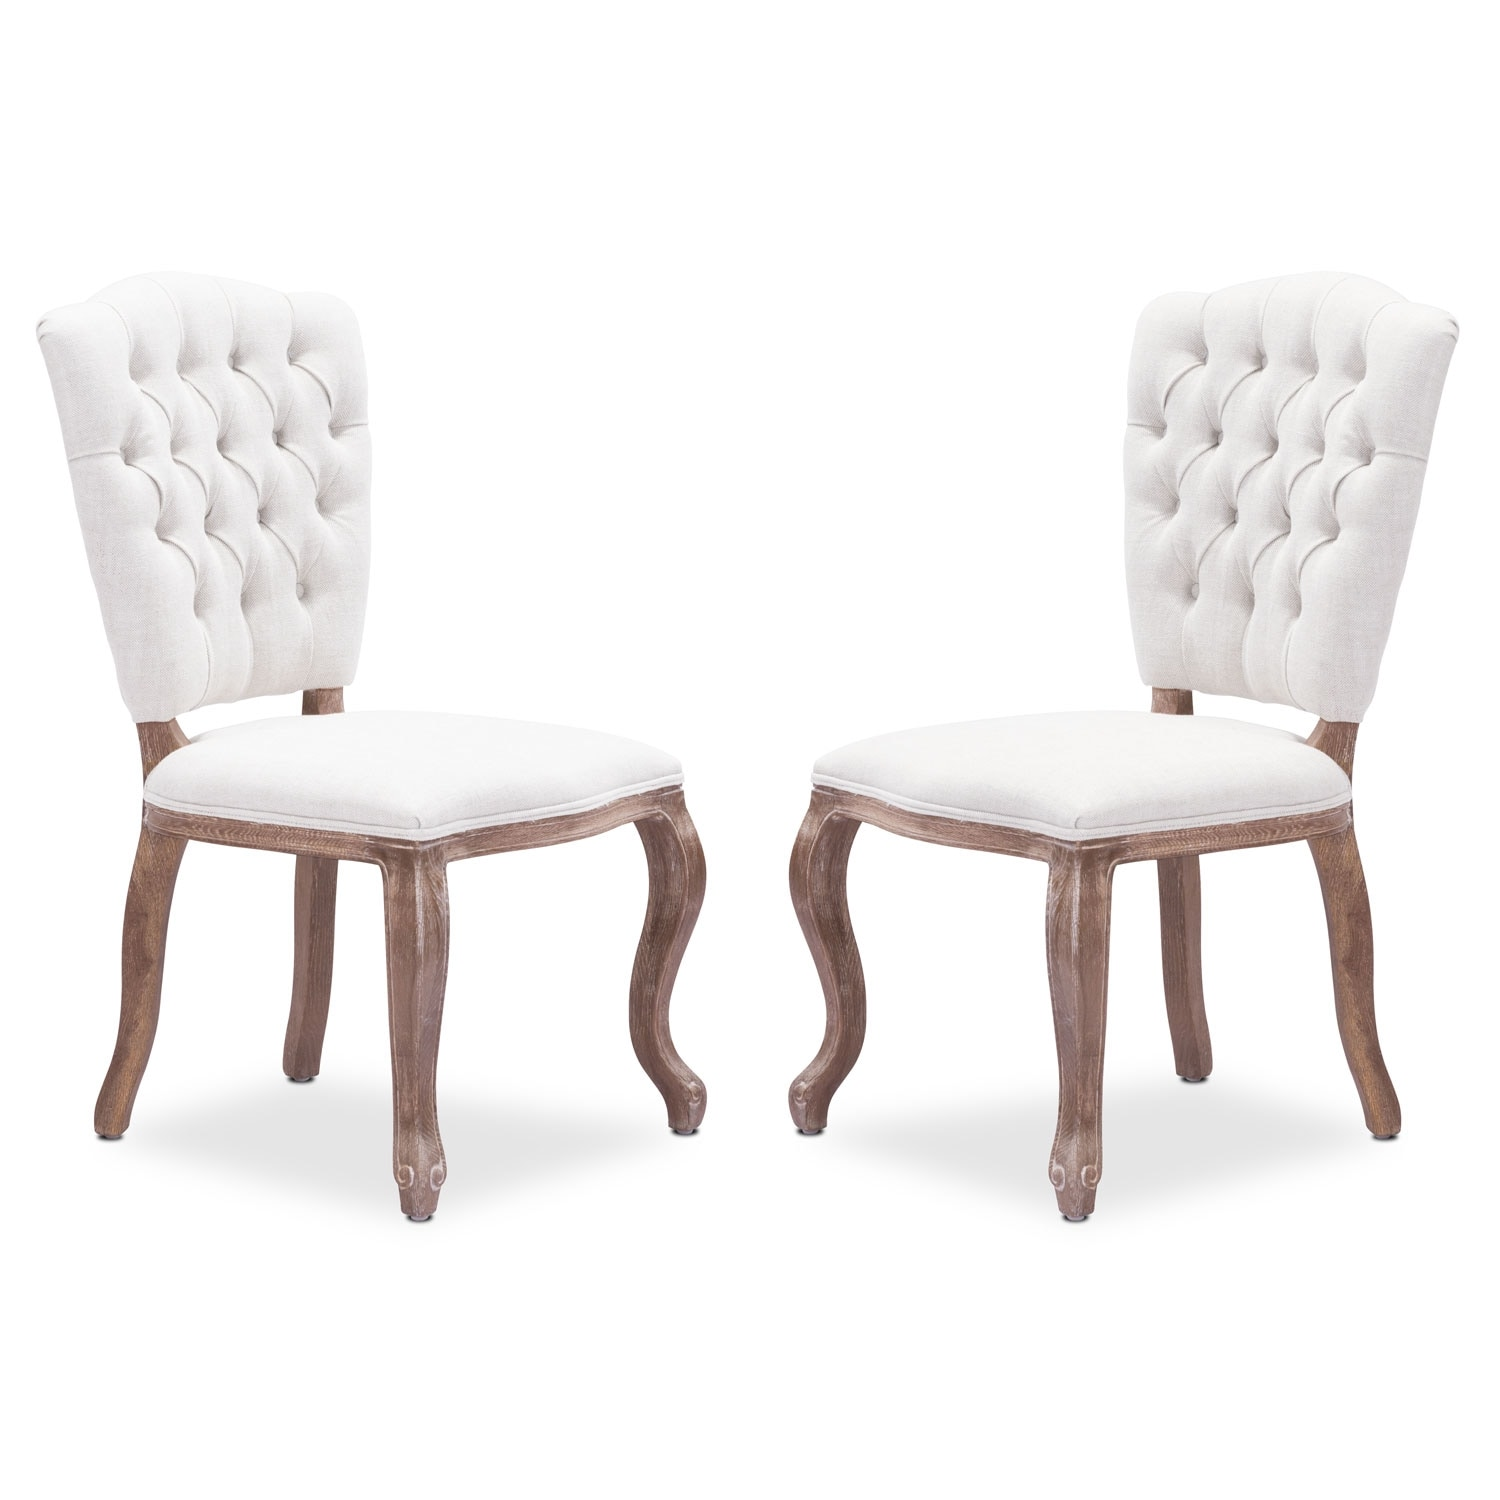 Dining room chairs seating american signature furniture for American furniture dinette sets